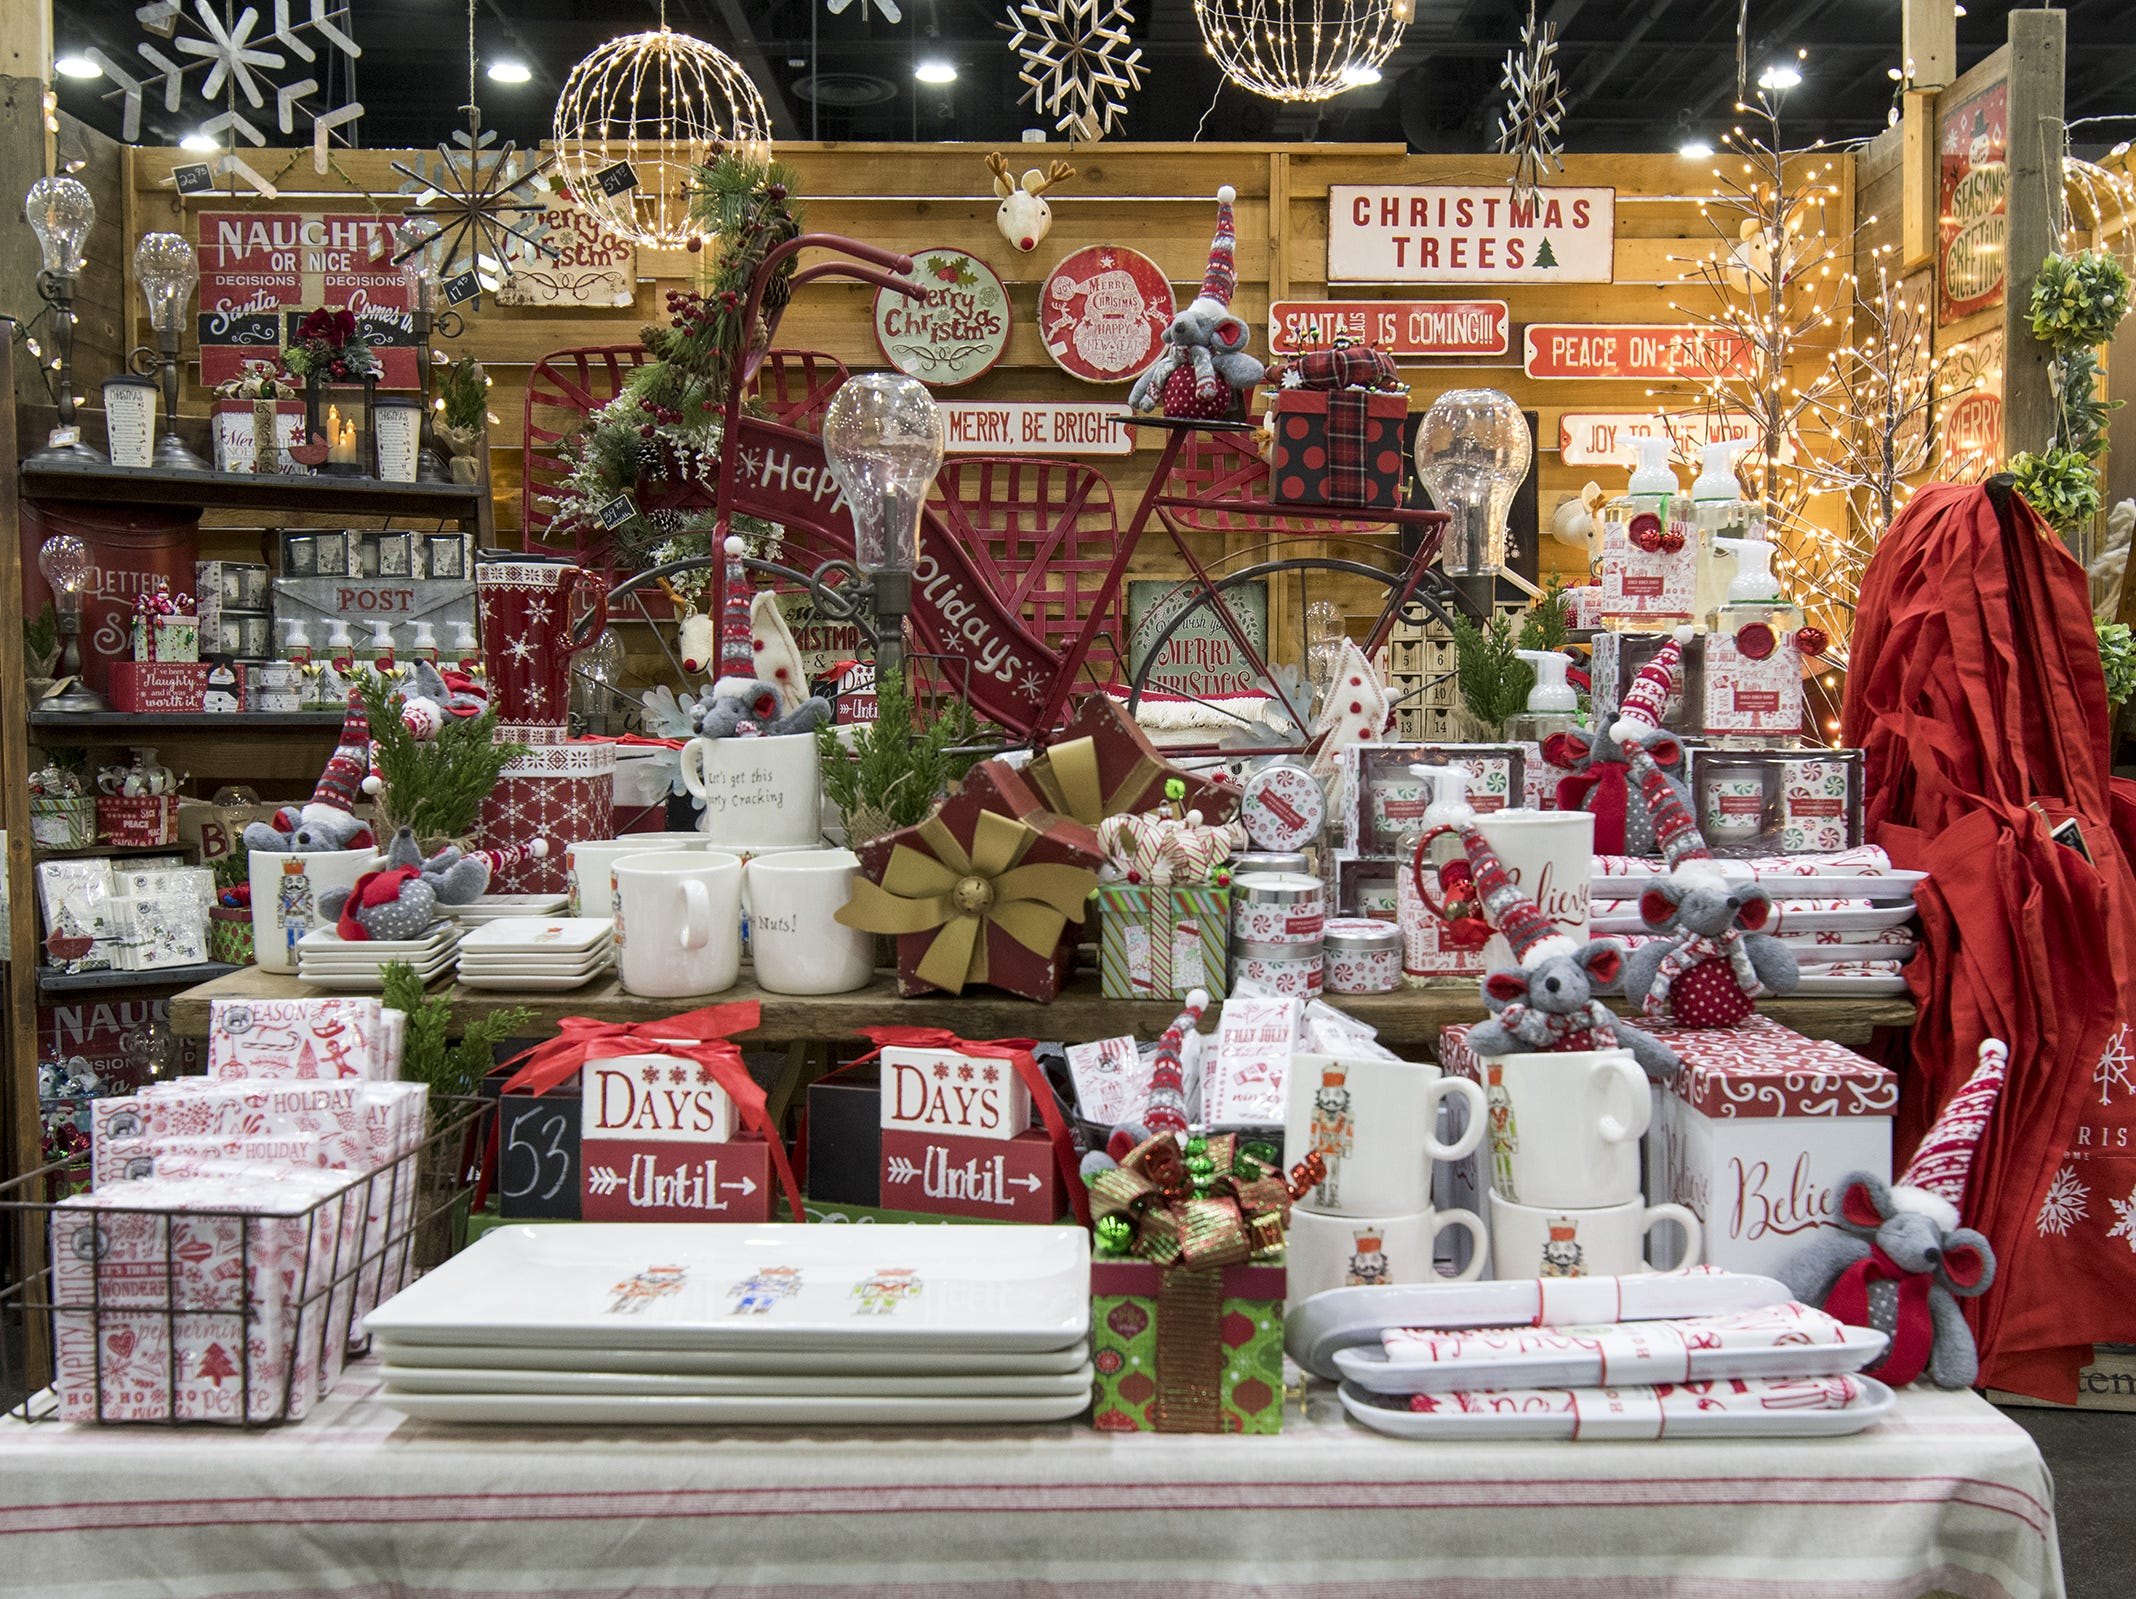 Flourish Home sells tons of holiday decorations during the Greater Cincinnati Holiday Market at the Duke Energy Center Friday, November 2, 2018 in Cincinnati, Ohio. The event runs through Sunday, November 4.